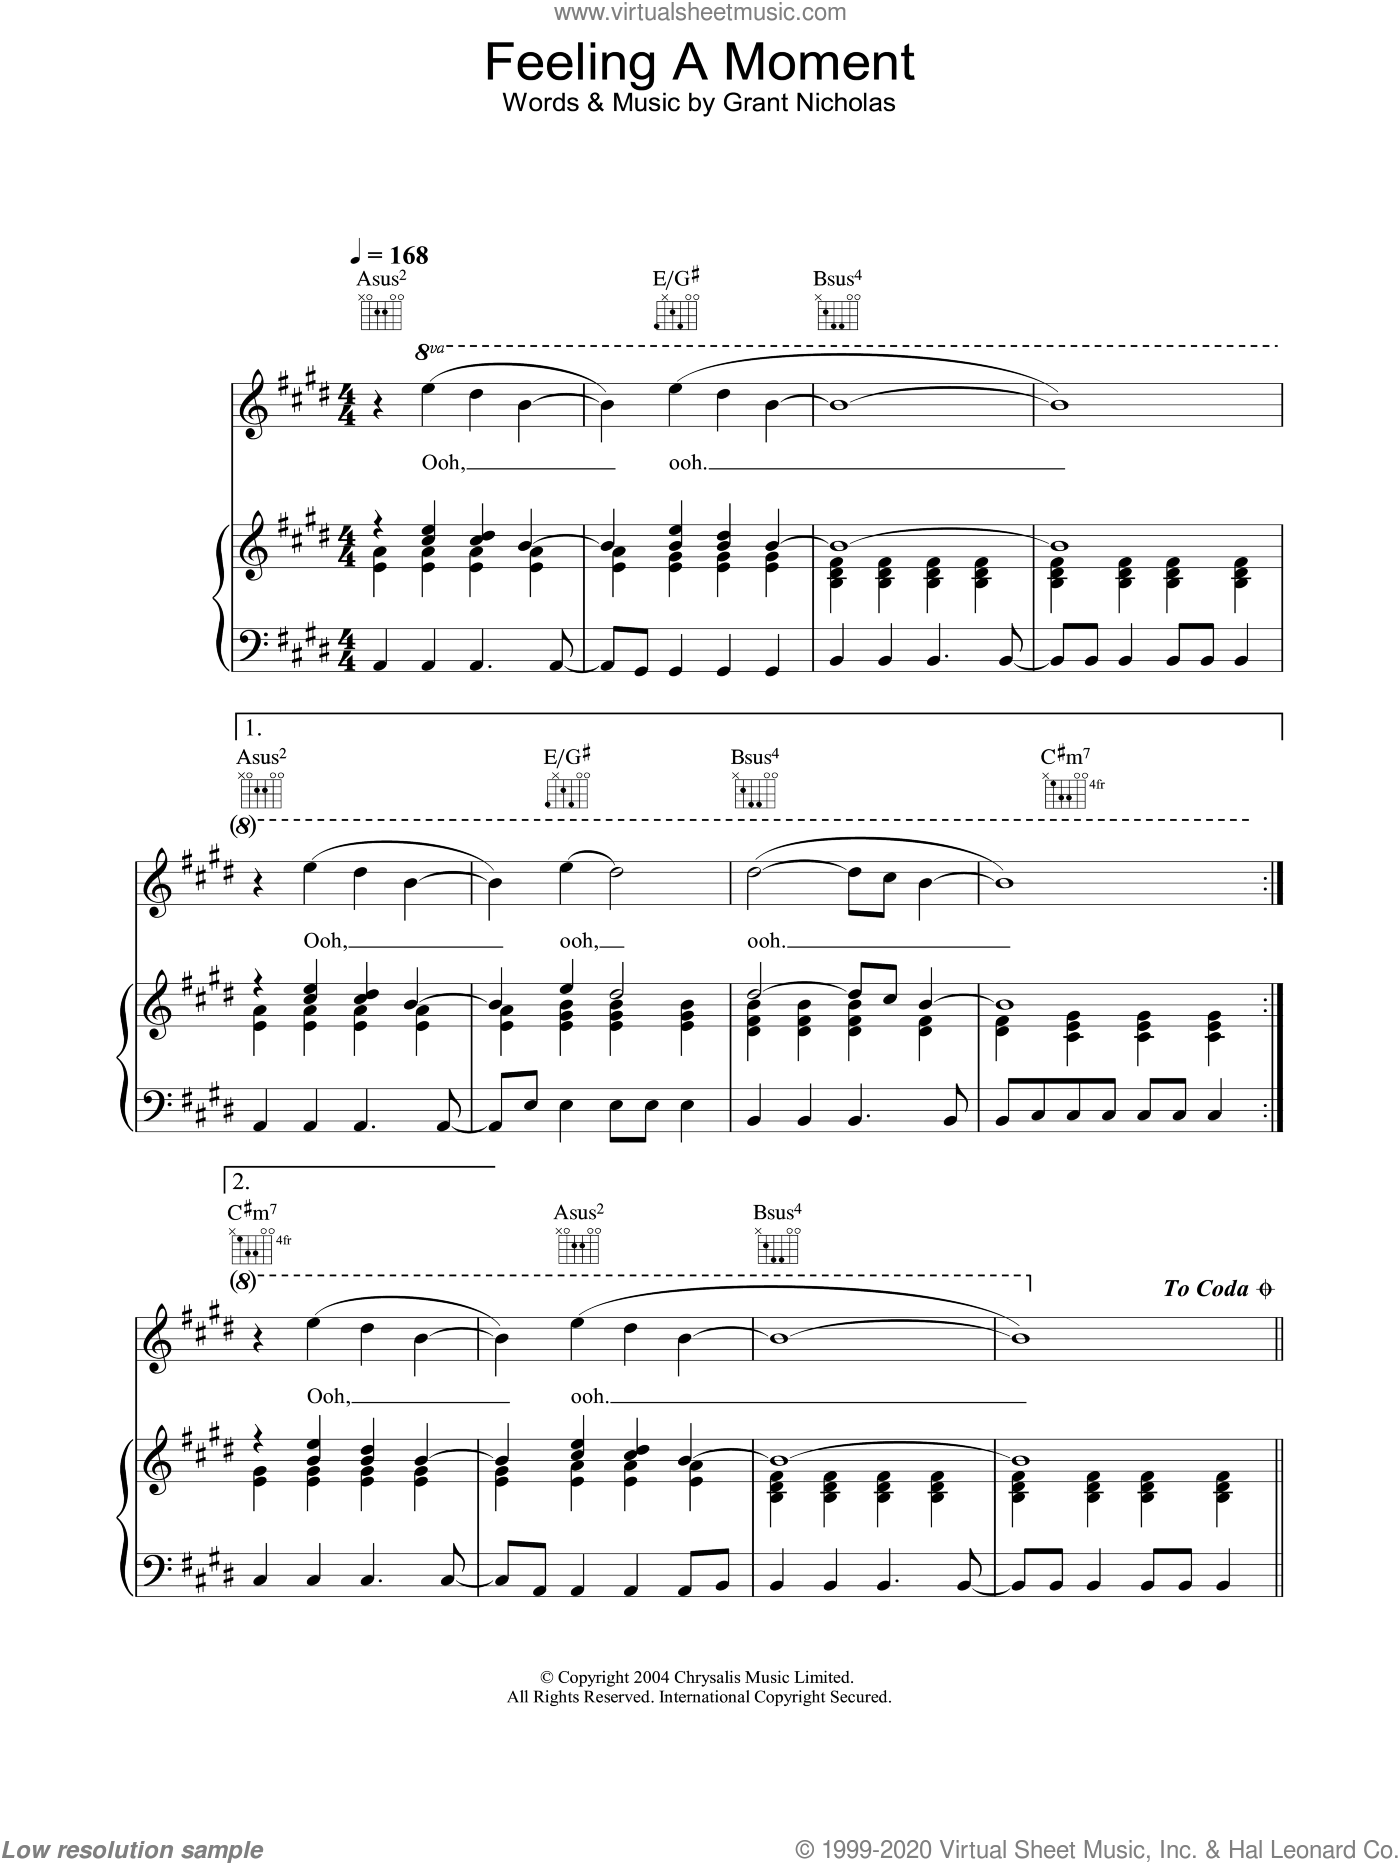 Feeling A Moment sheet music for voice, piano or guitar by Grant Nicholas and Feeder. Score Image Preview.